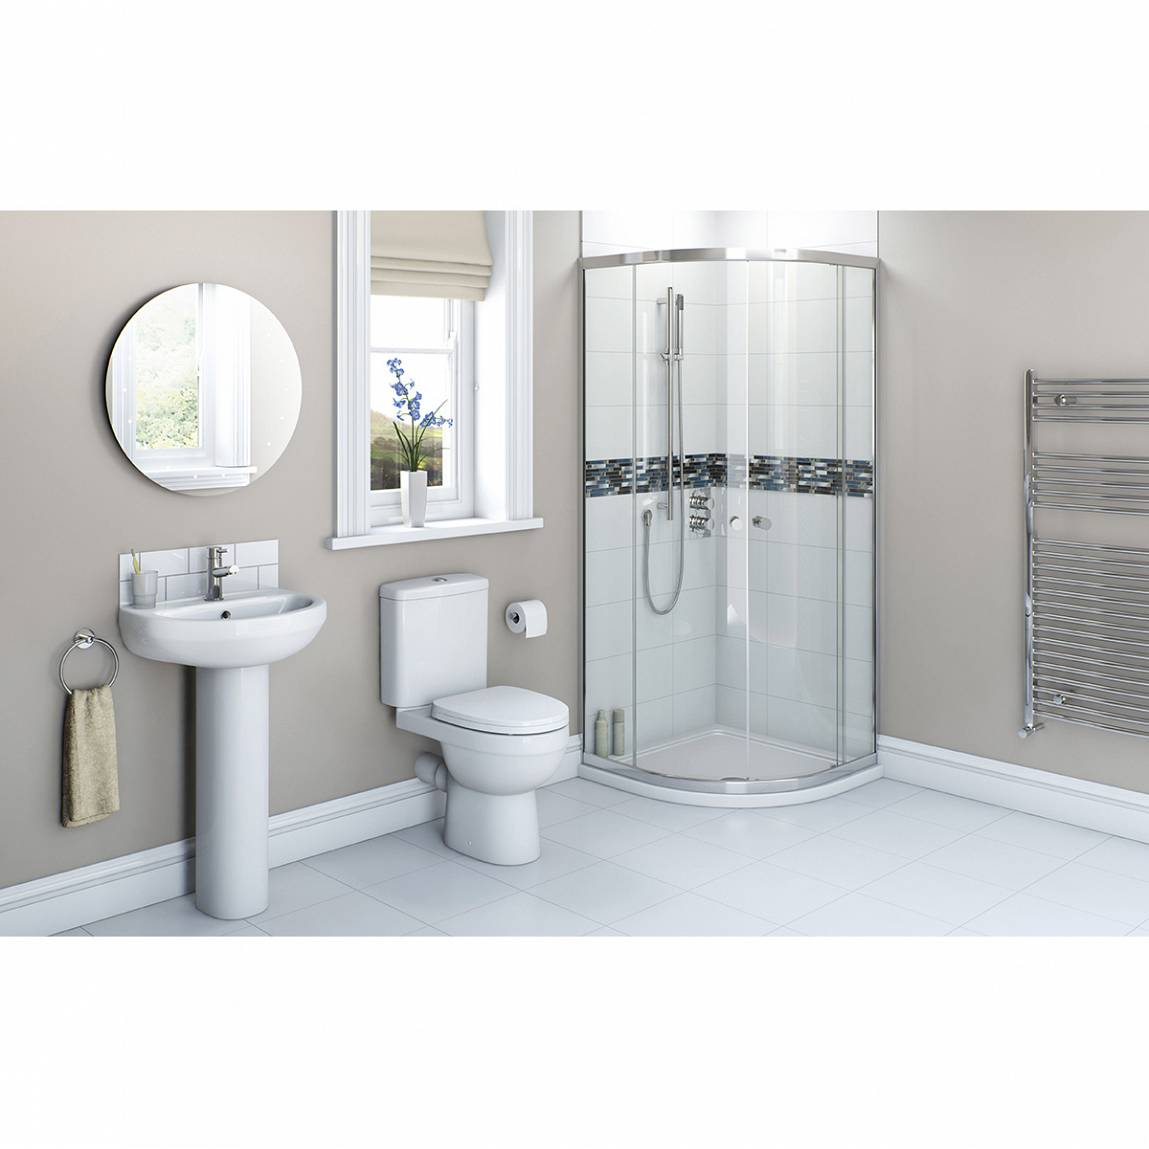 Image of Energy Bathroom set with Quadrant Enclosure 900